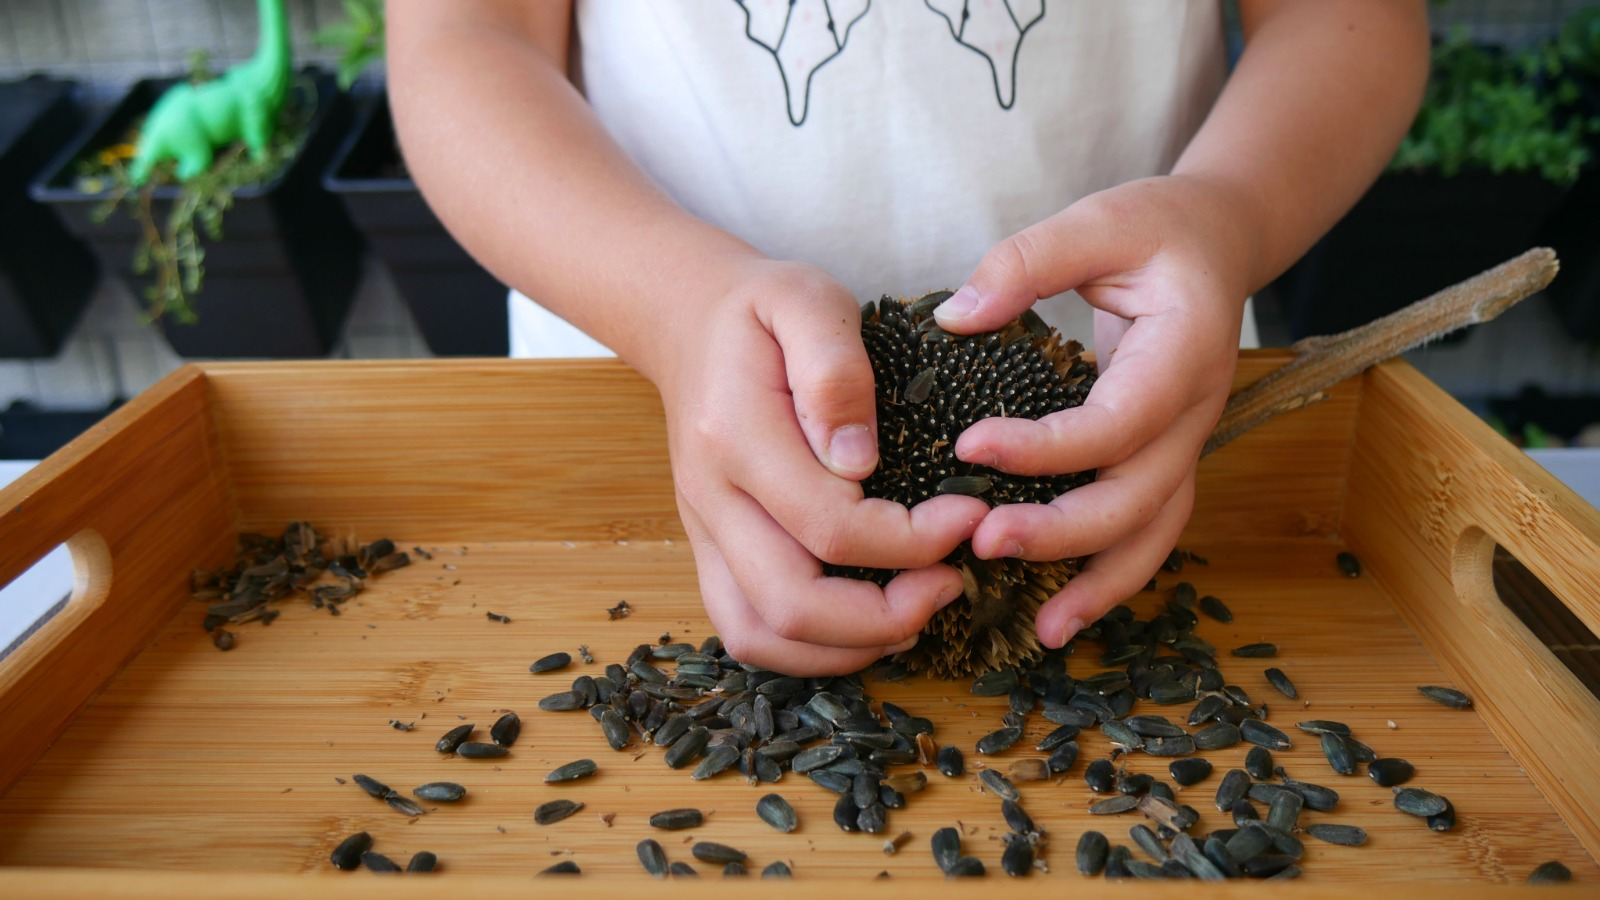 You'll love how easy seed saving really is